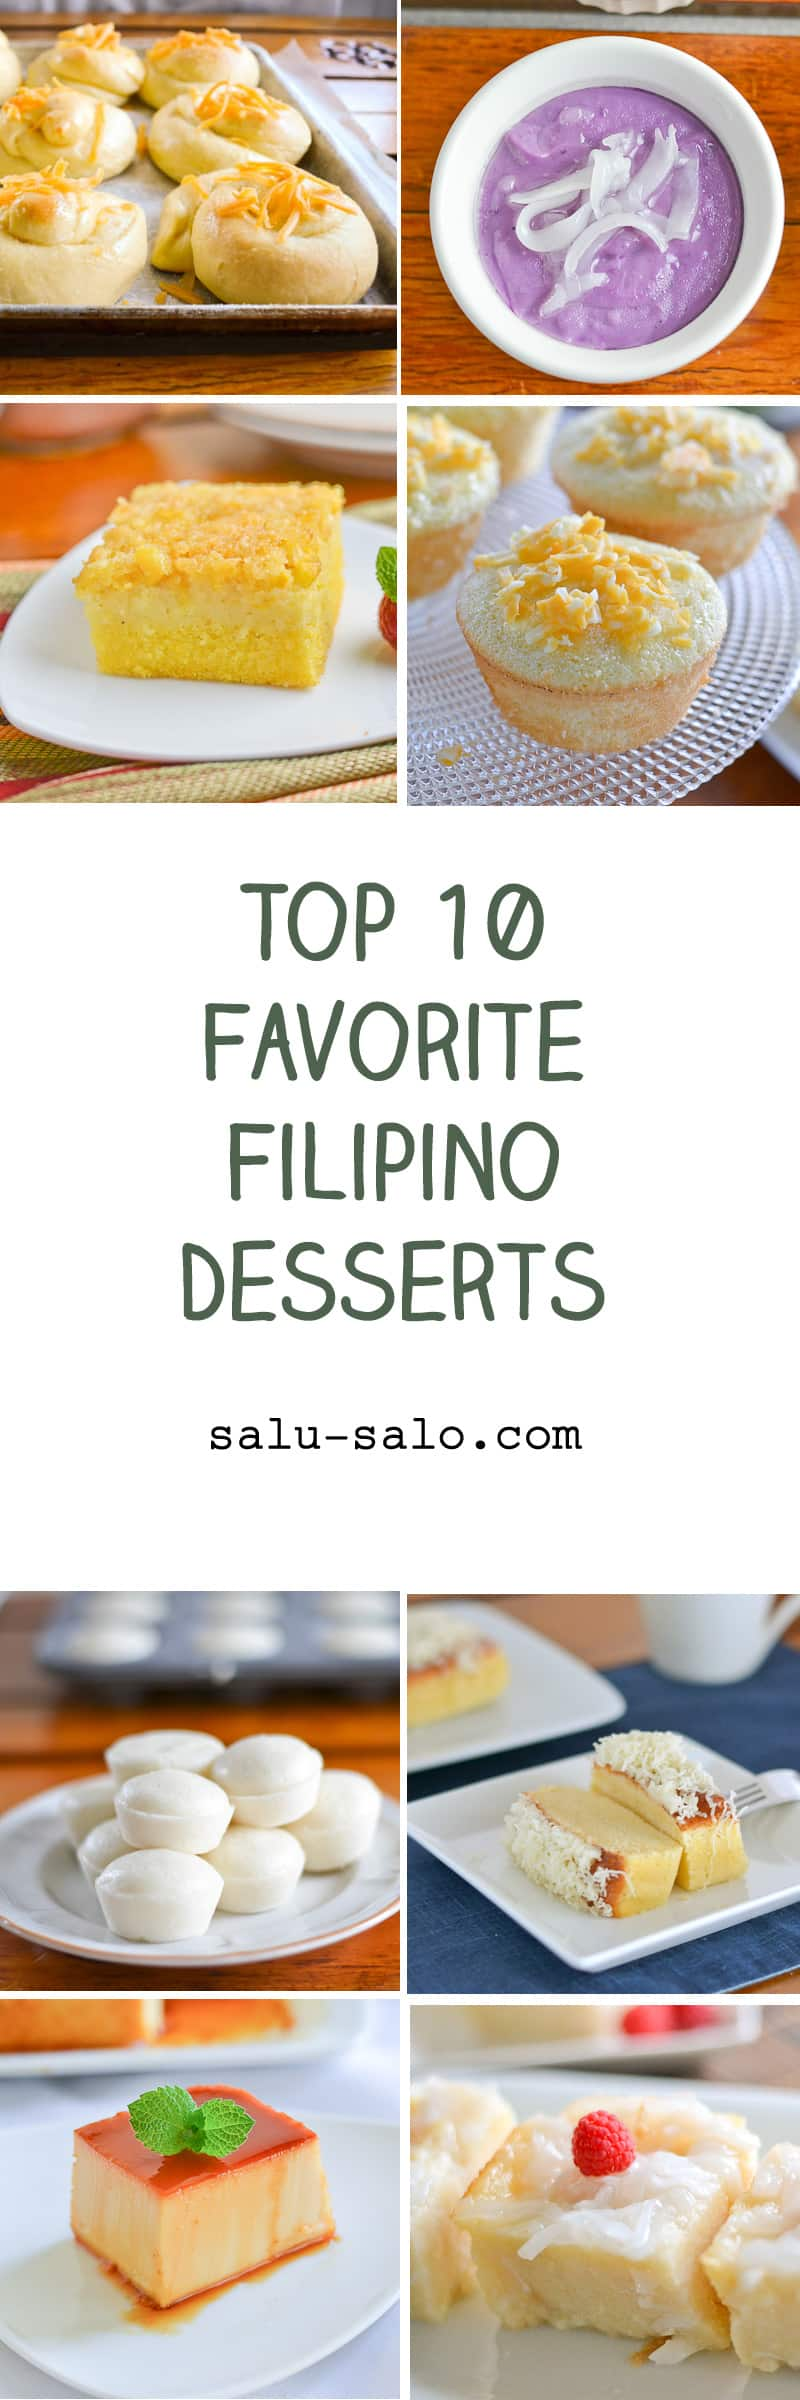 Top 10 Favorite Filipino Desserts